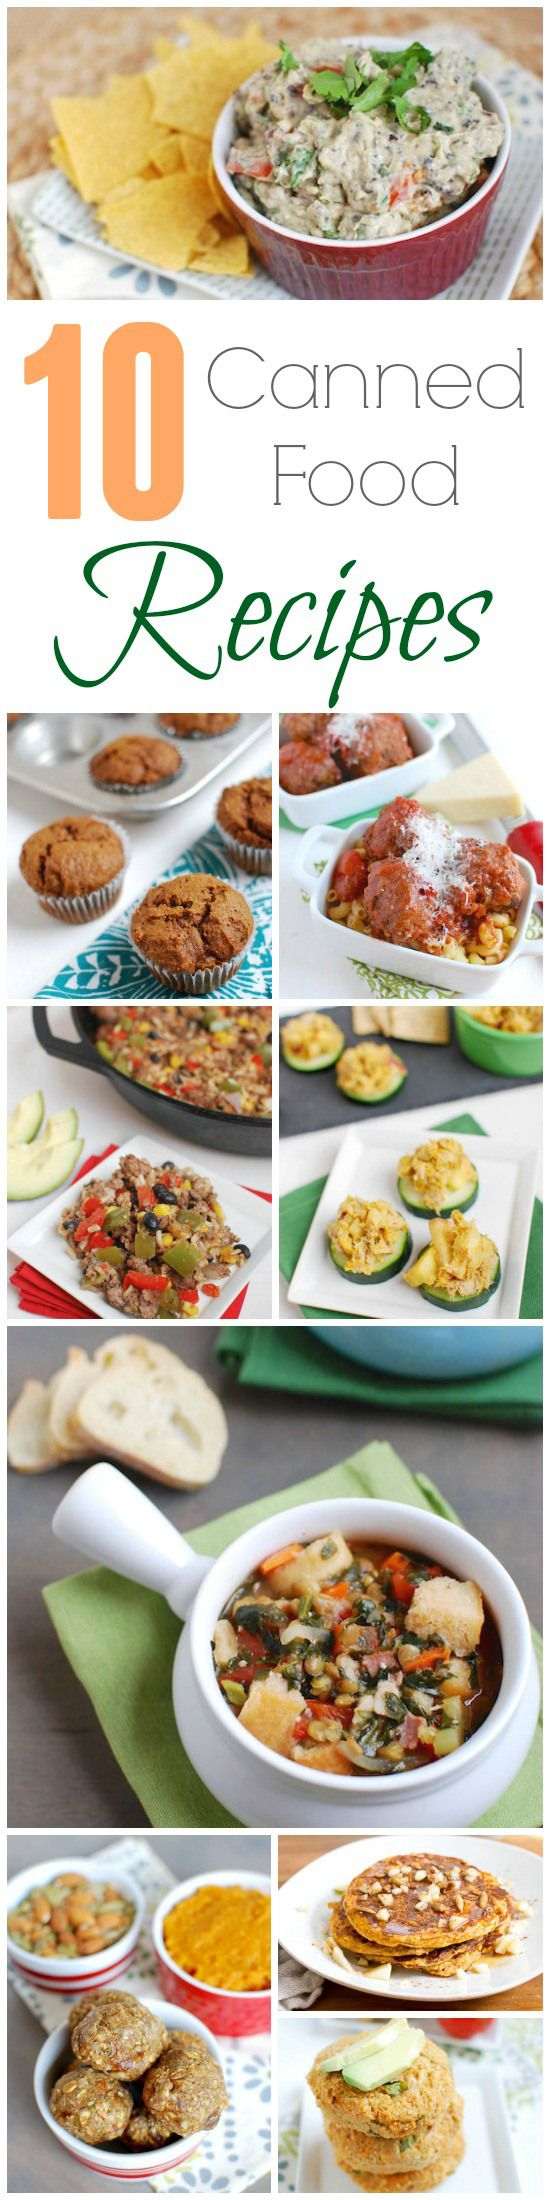 Canned food recipes healthy living recipes recipes and food food forumfinder Images